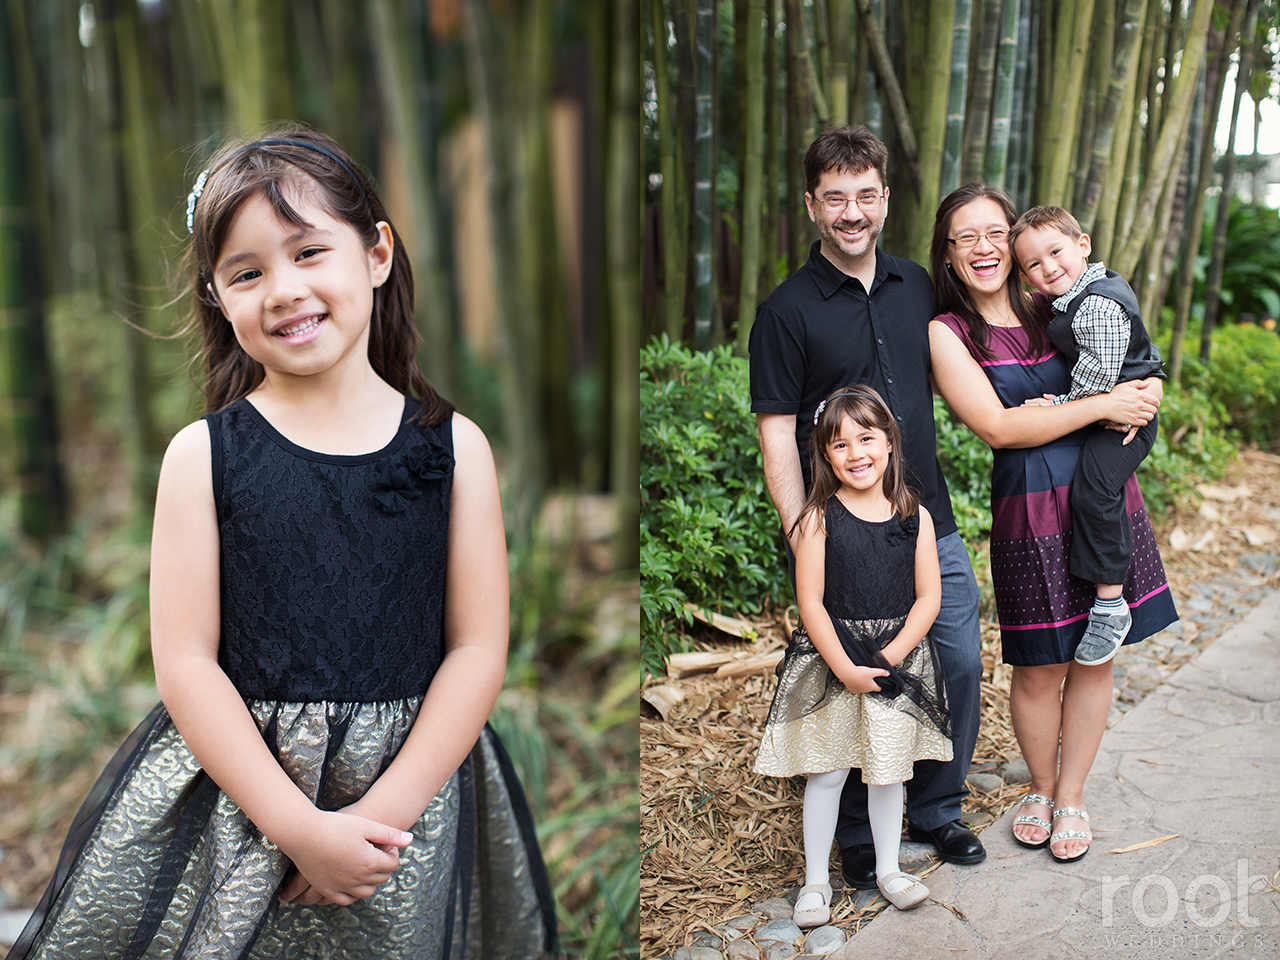 Orlando Florida Family Session Photographer 10